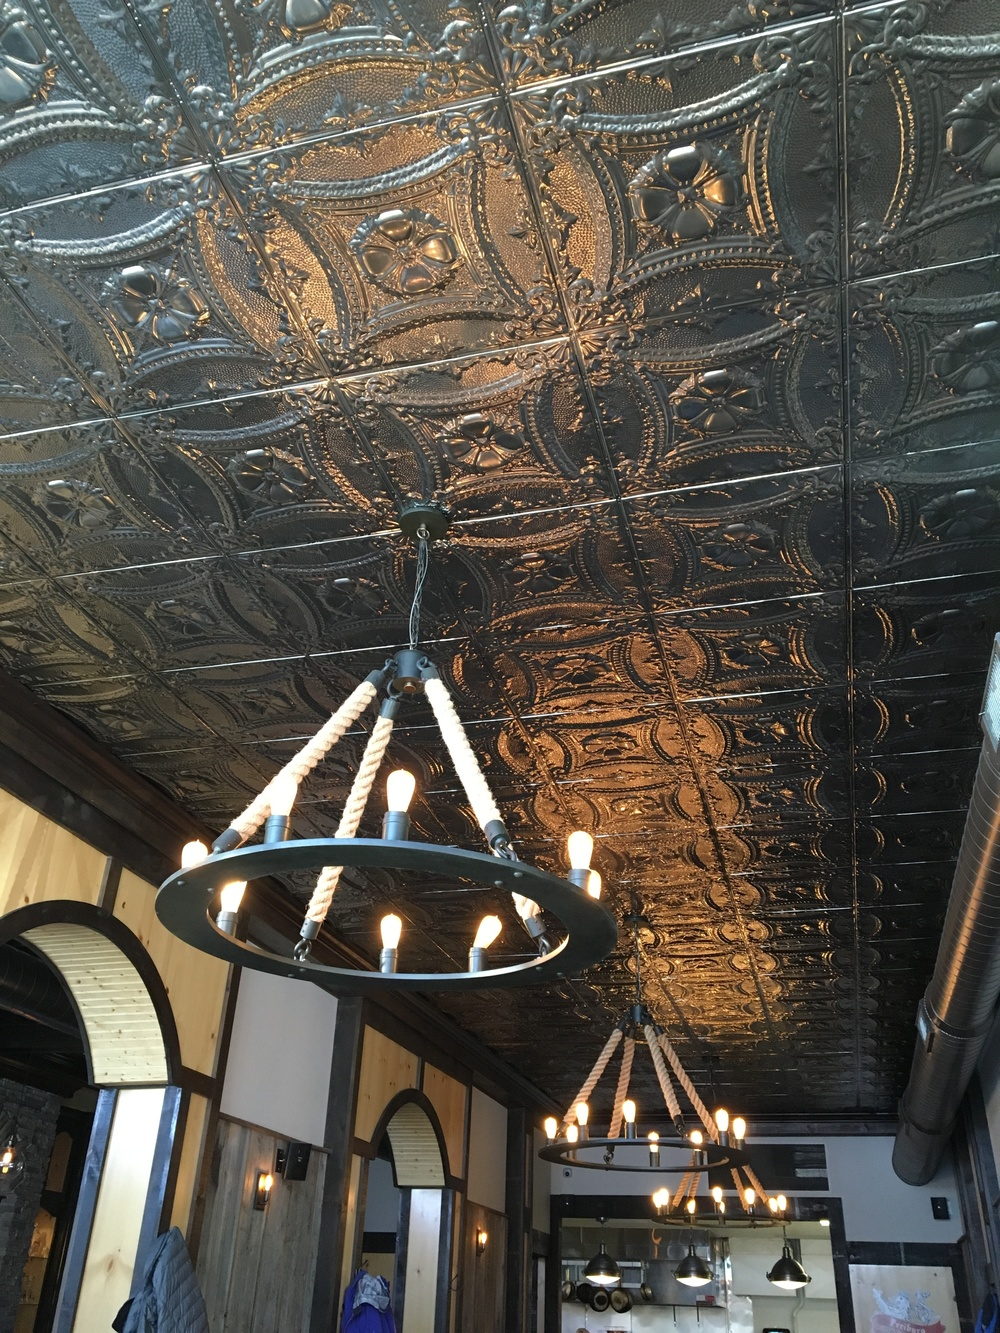 Tin ceiling & rustic style fixtures at Freiburg Gastropub                                                                                                                    Photo by Epicurean Chronicles